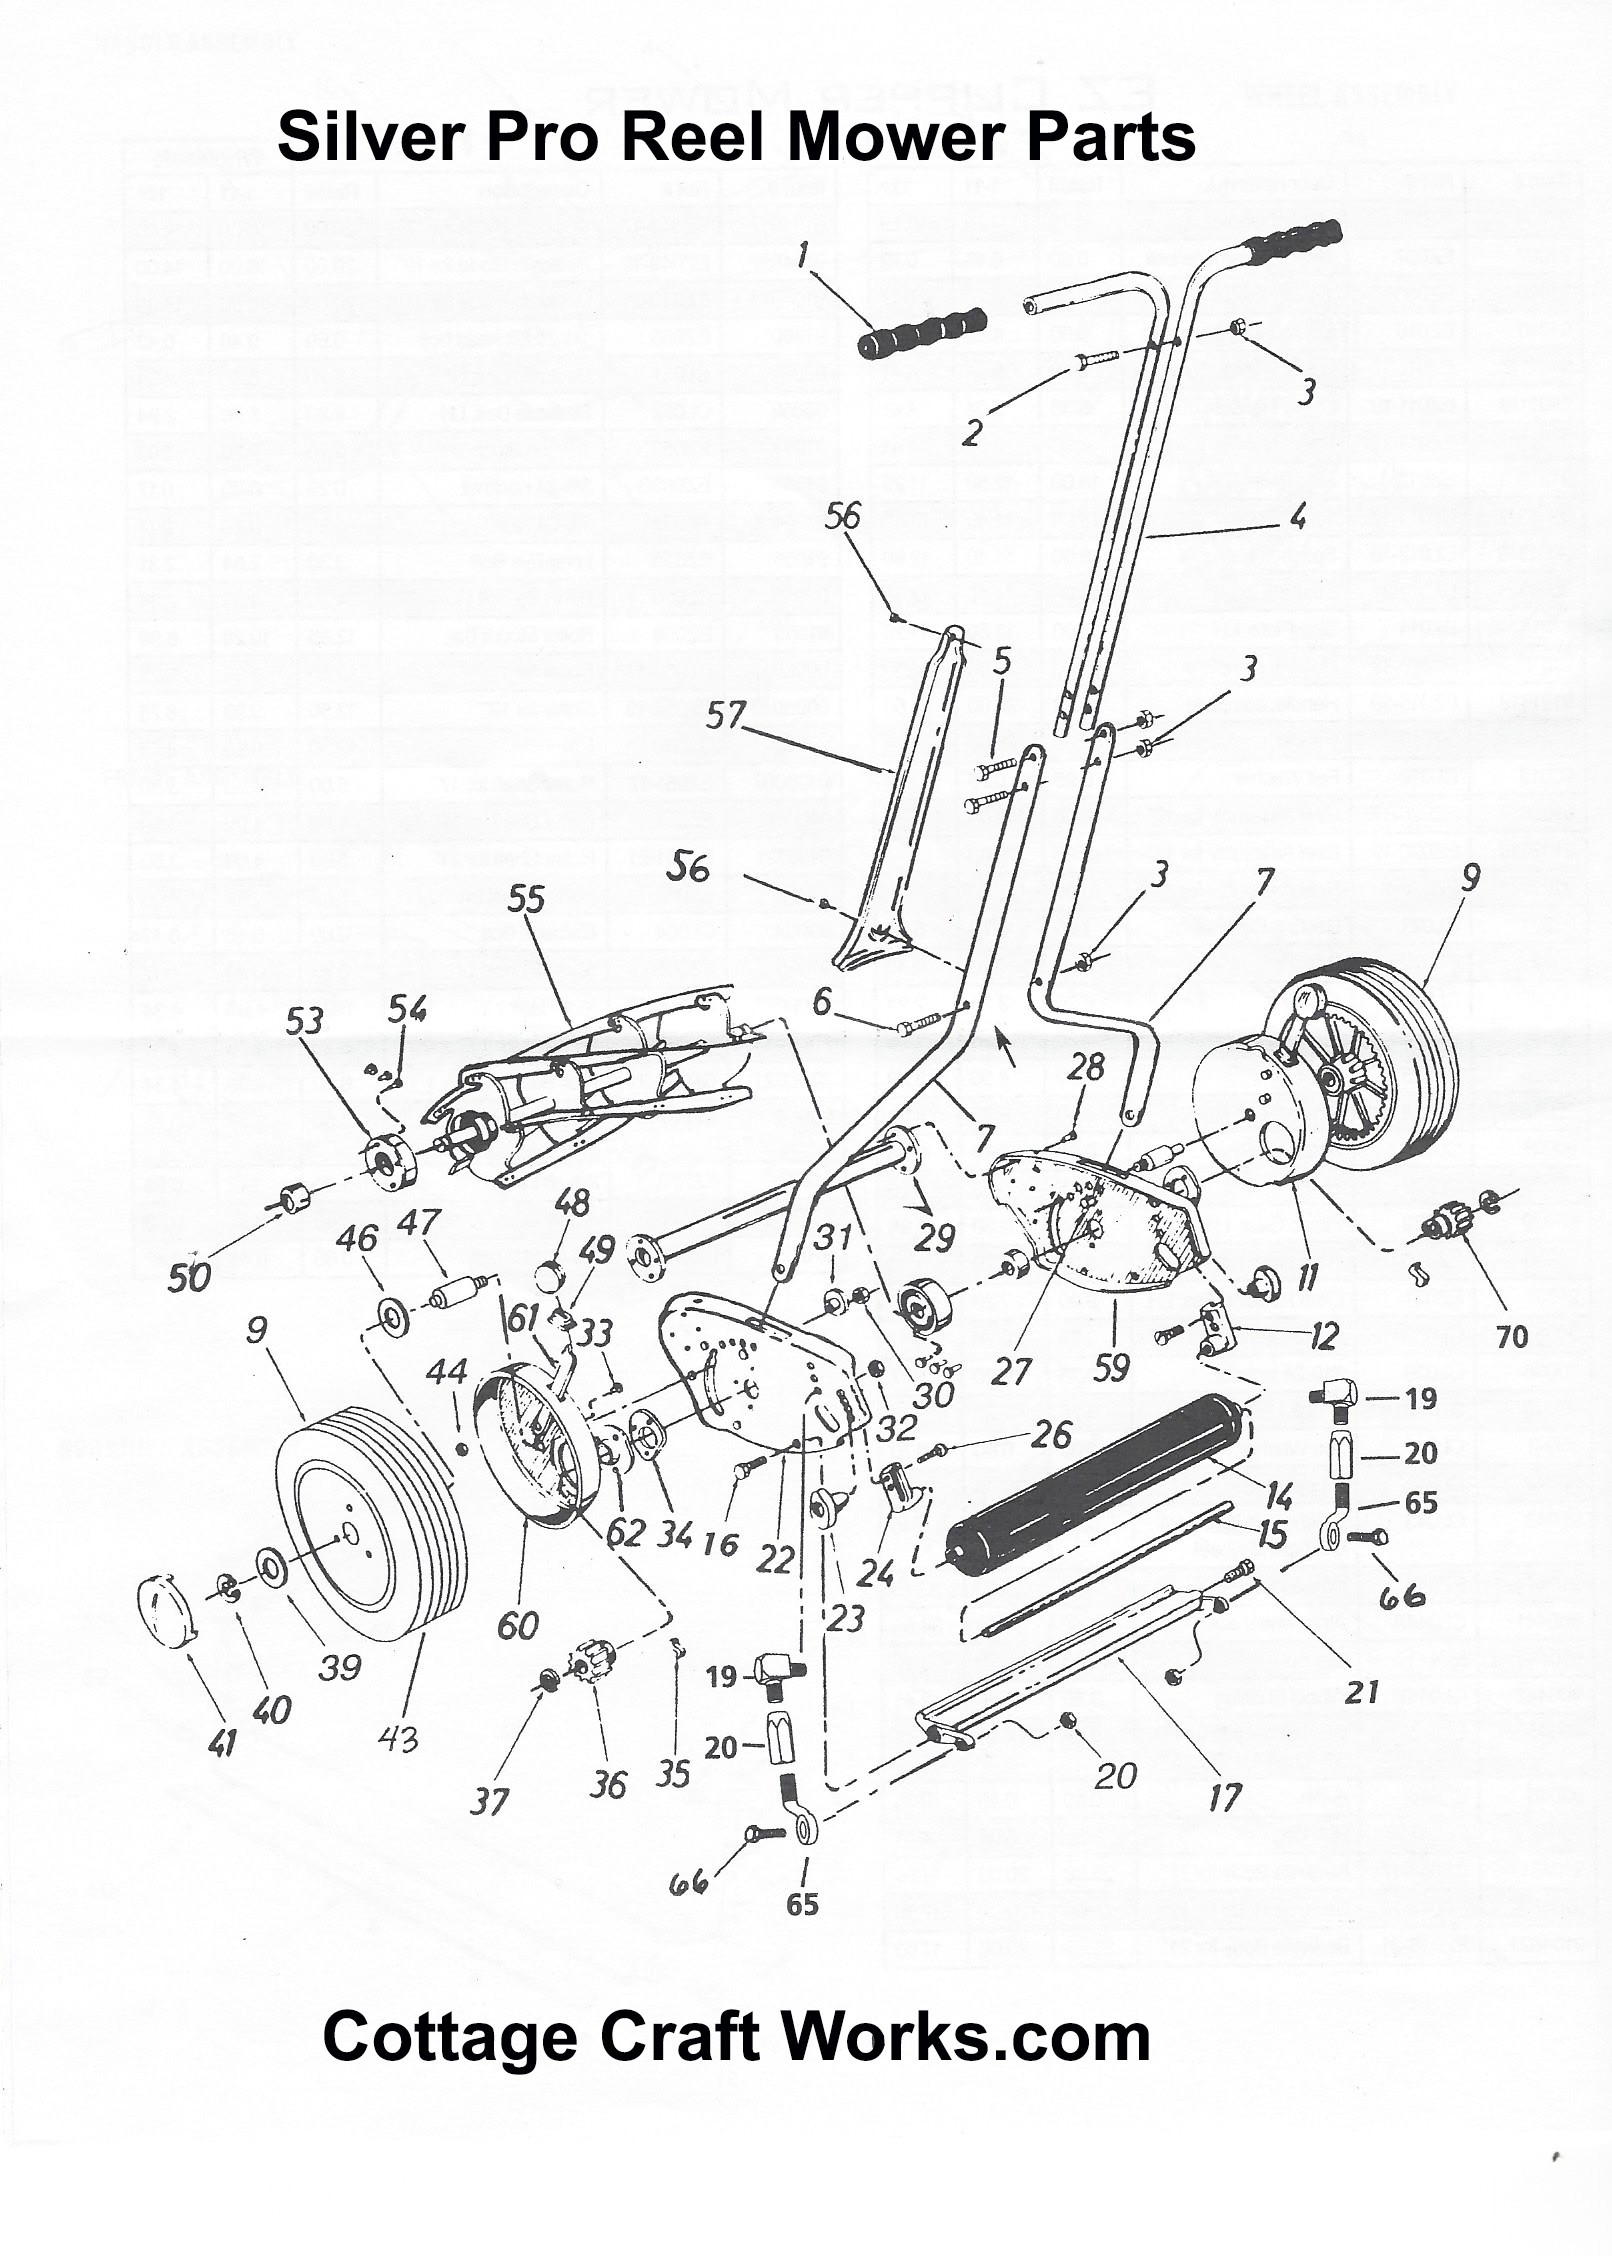 Silver Pro Reel Mower Parts